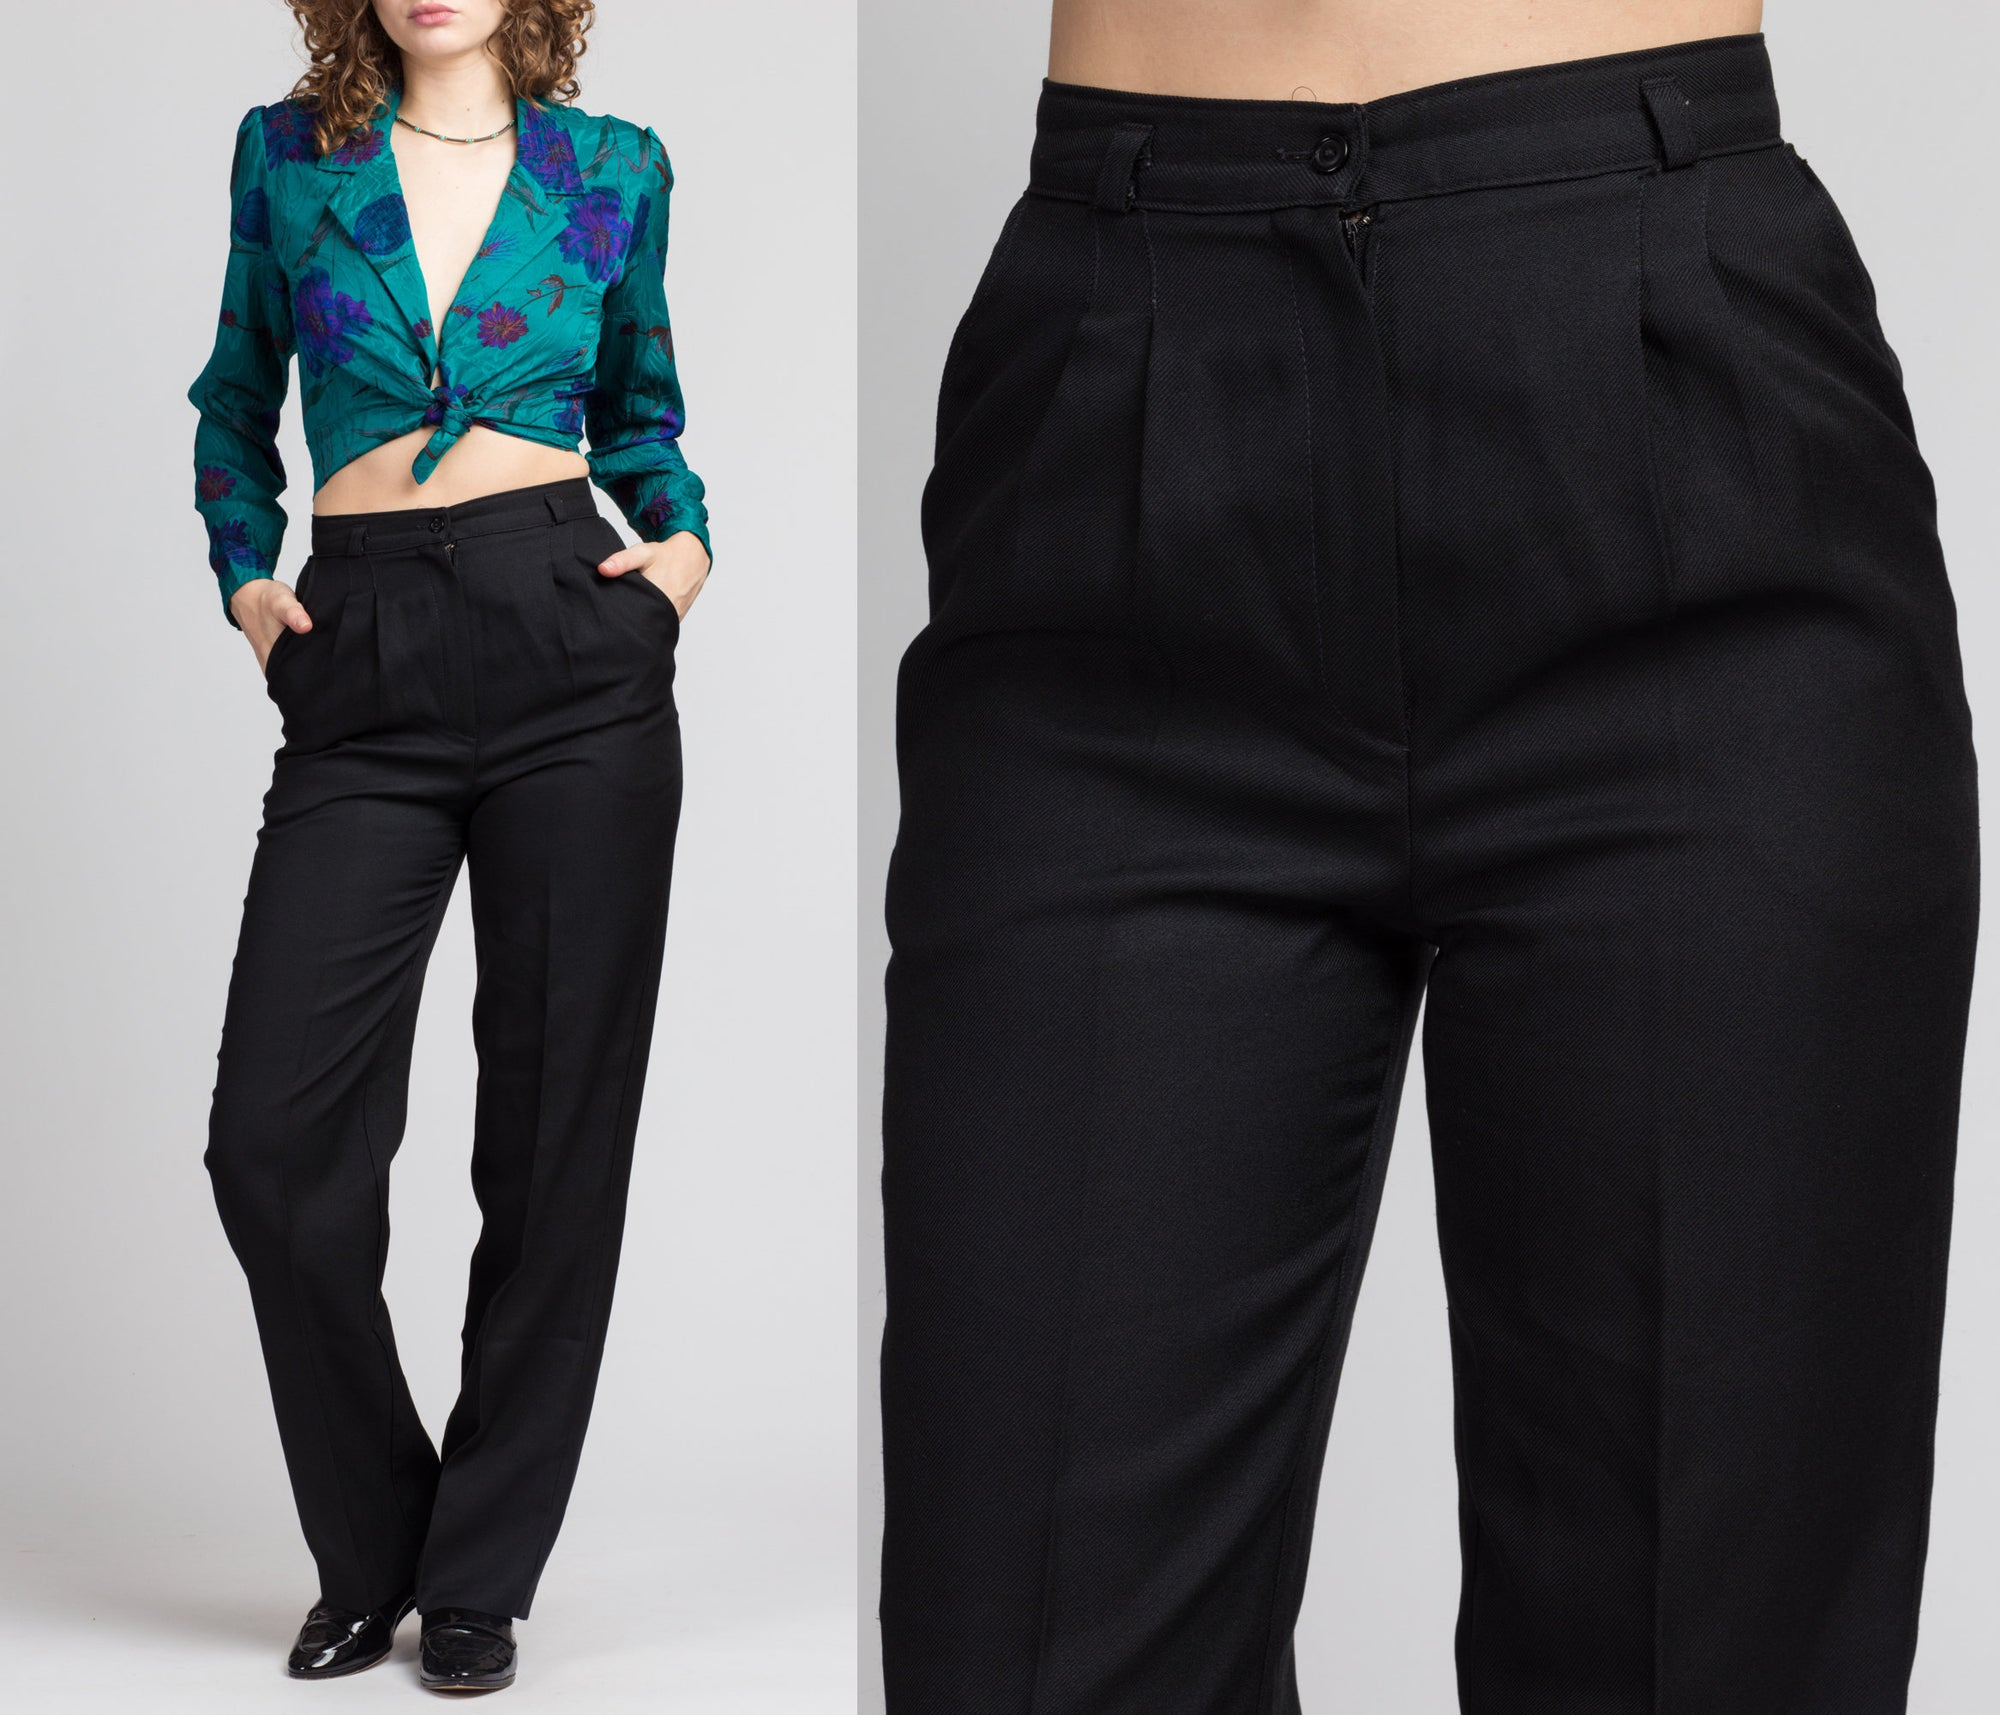 70s Black High Waist Trousers - Small, 26""